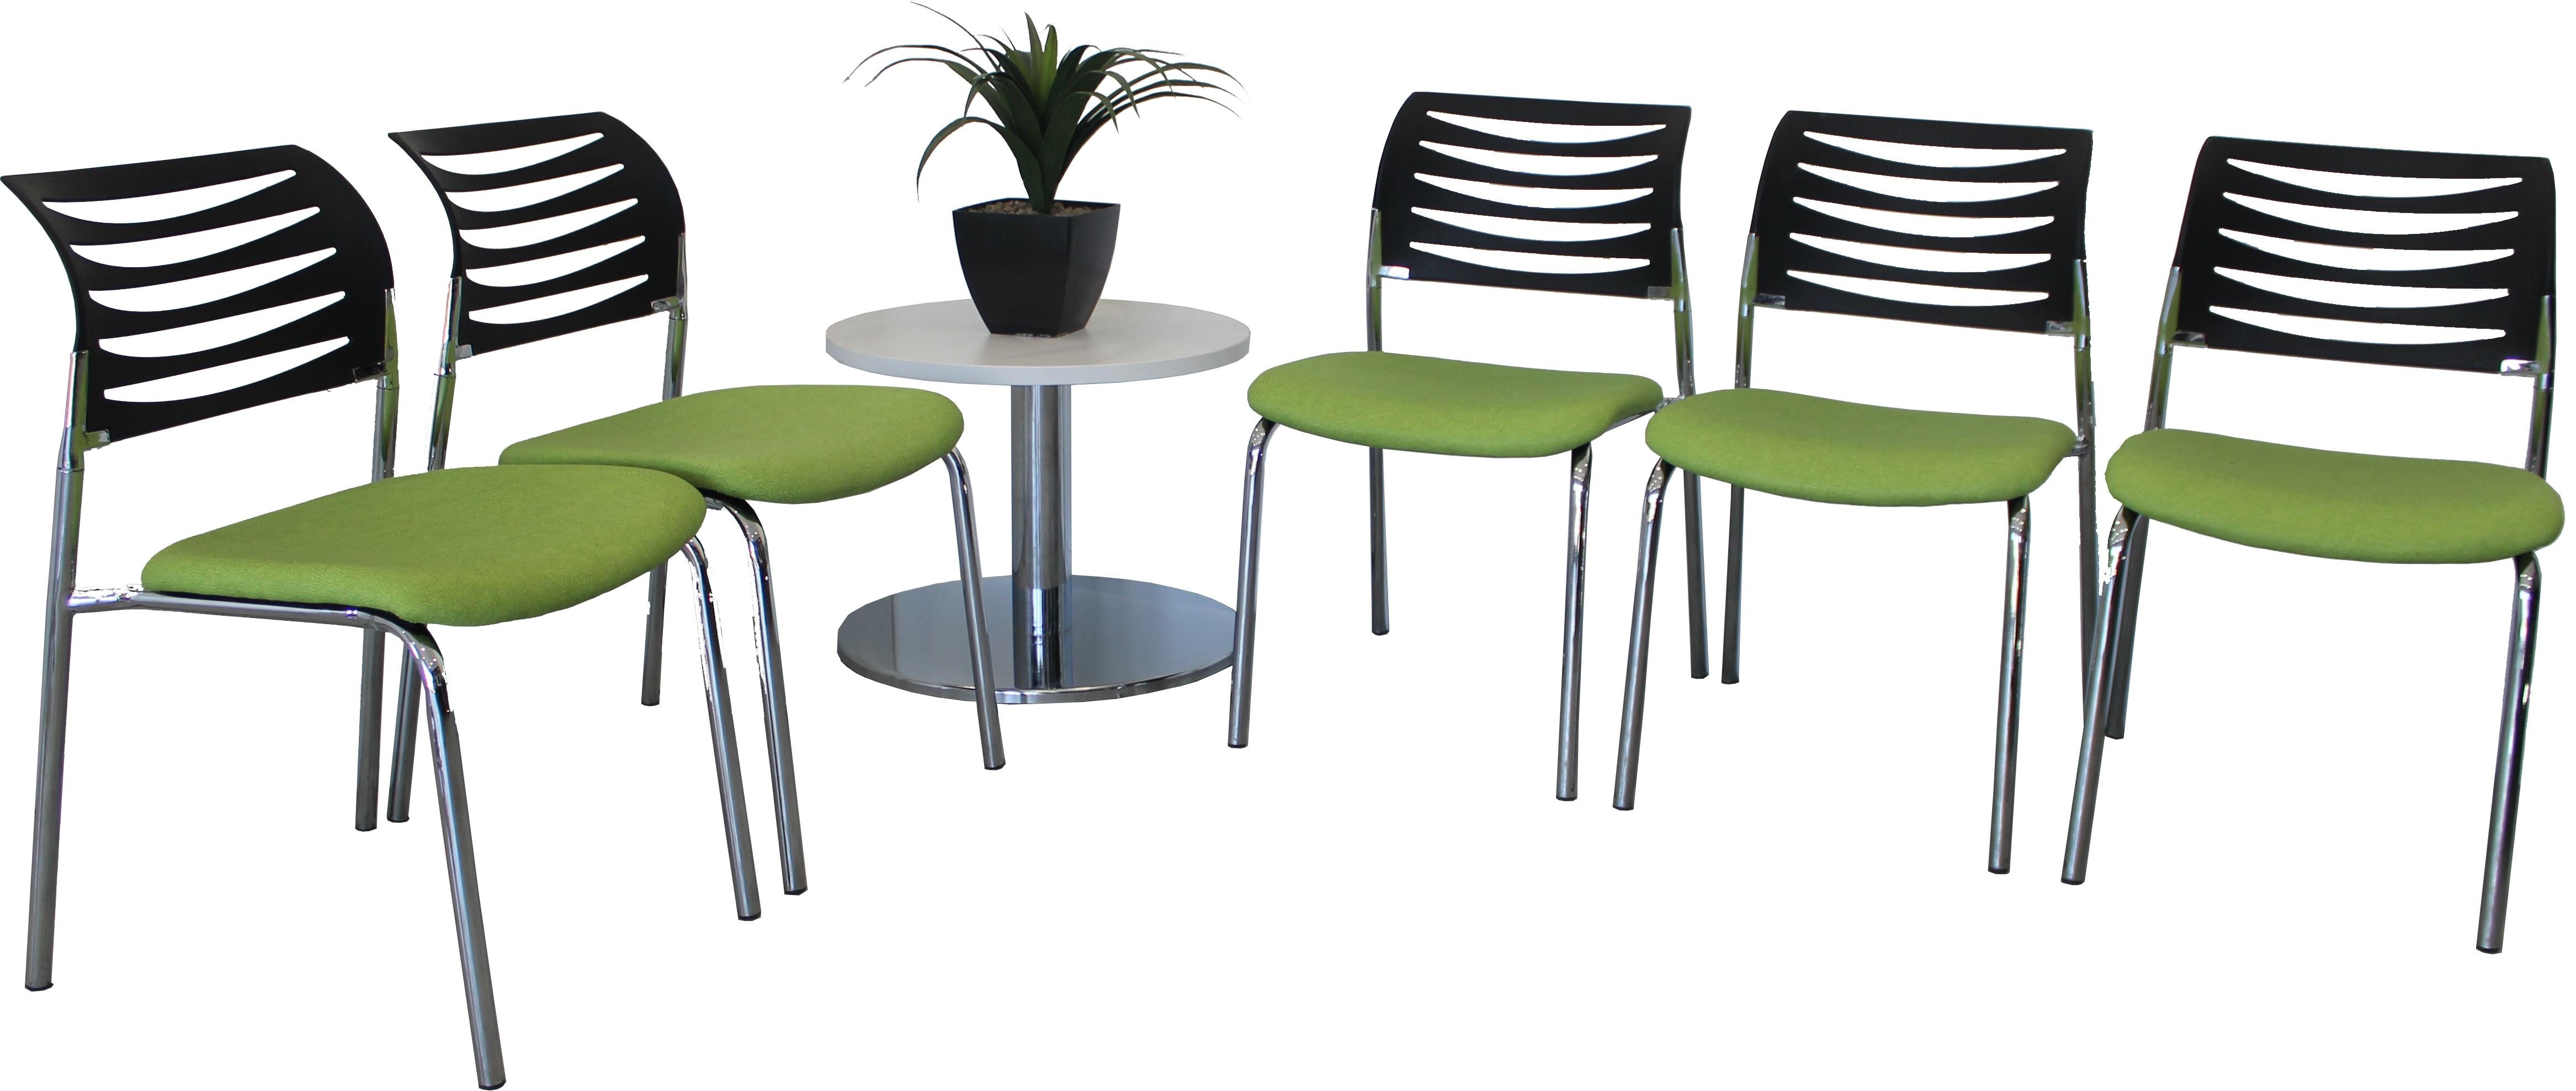 office boardroom chair colour green red black sydney stackable